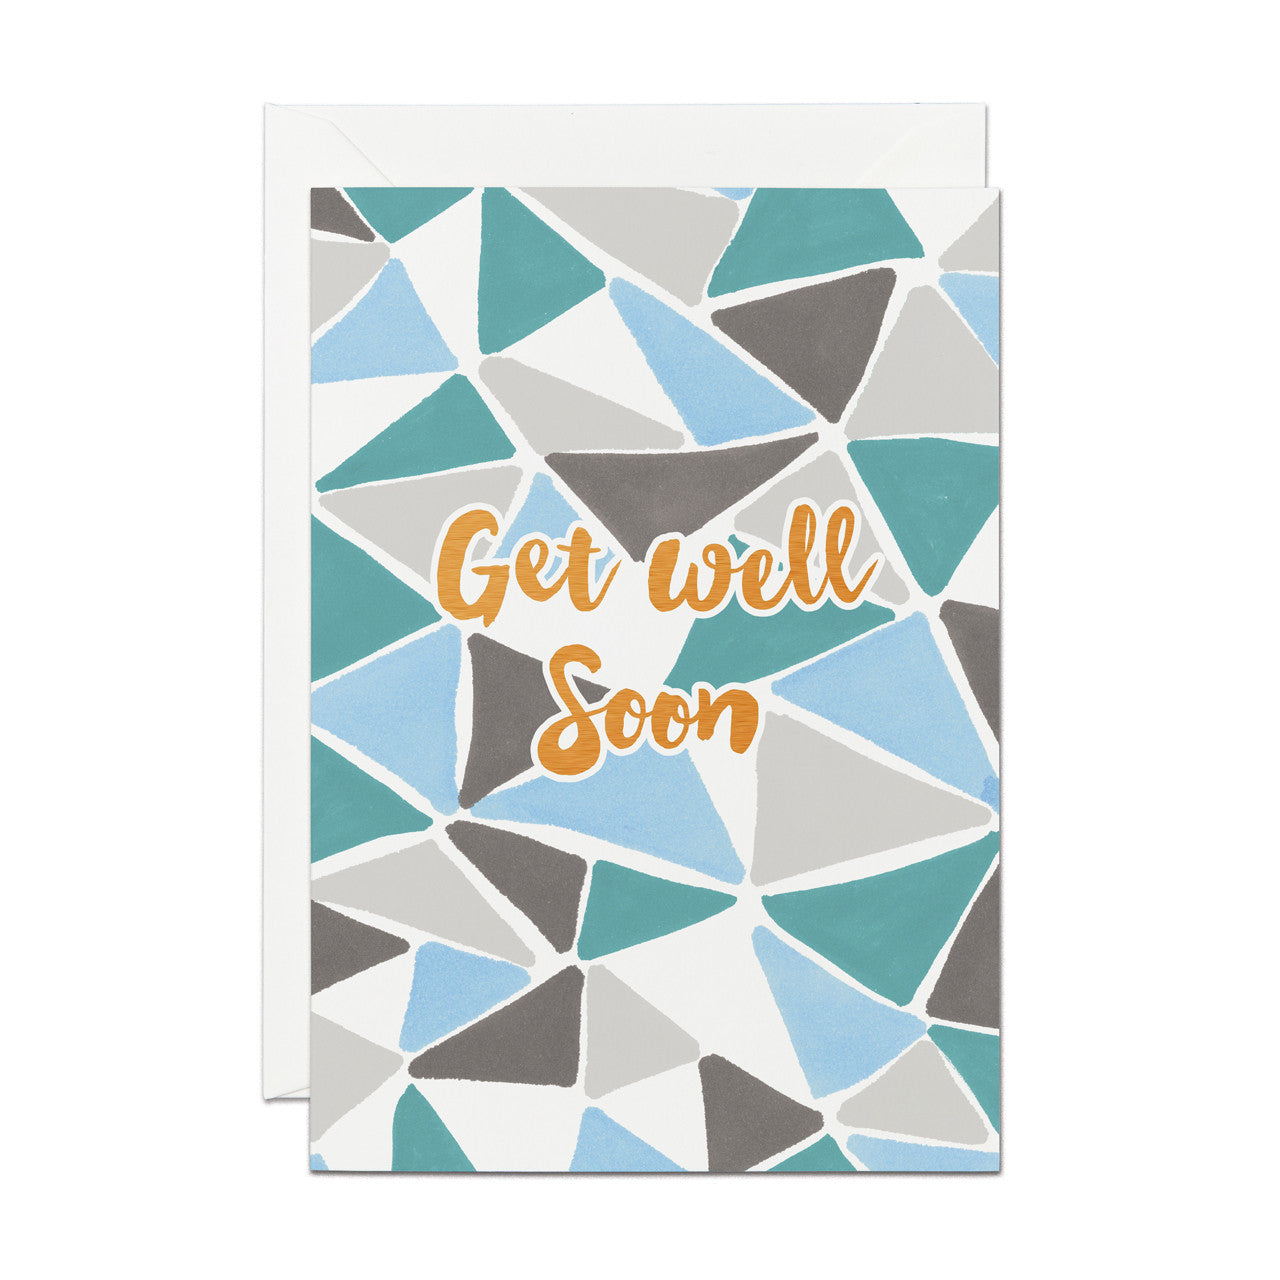 Get Well Soon- Copper Foil greeting card (PACK OF 6)